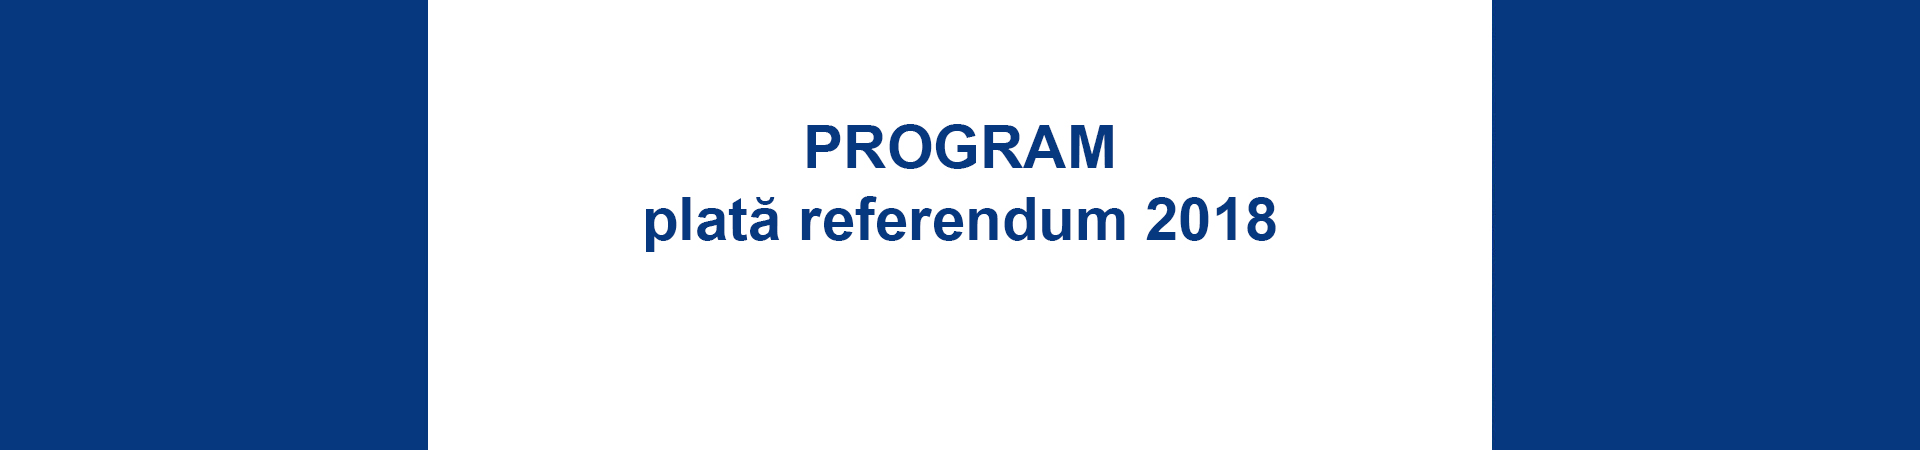 Program plată referendum 2018